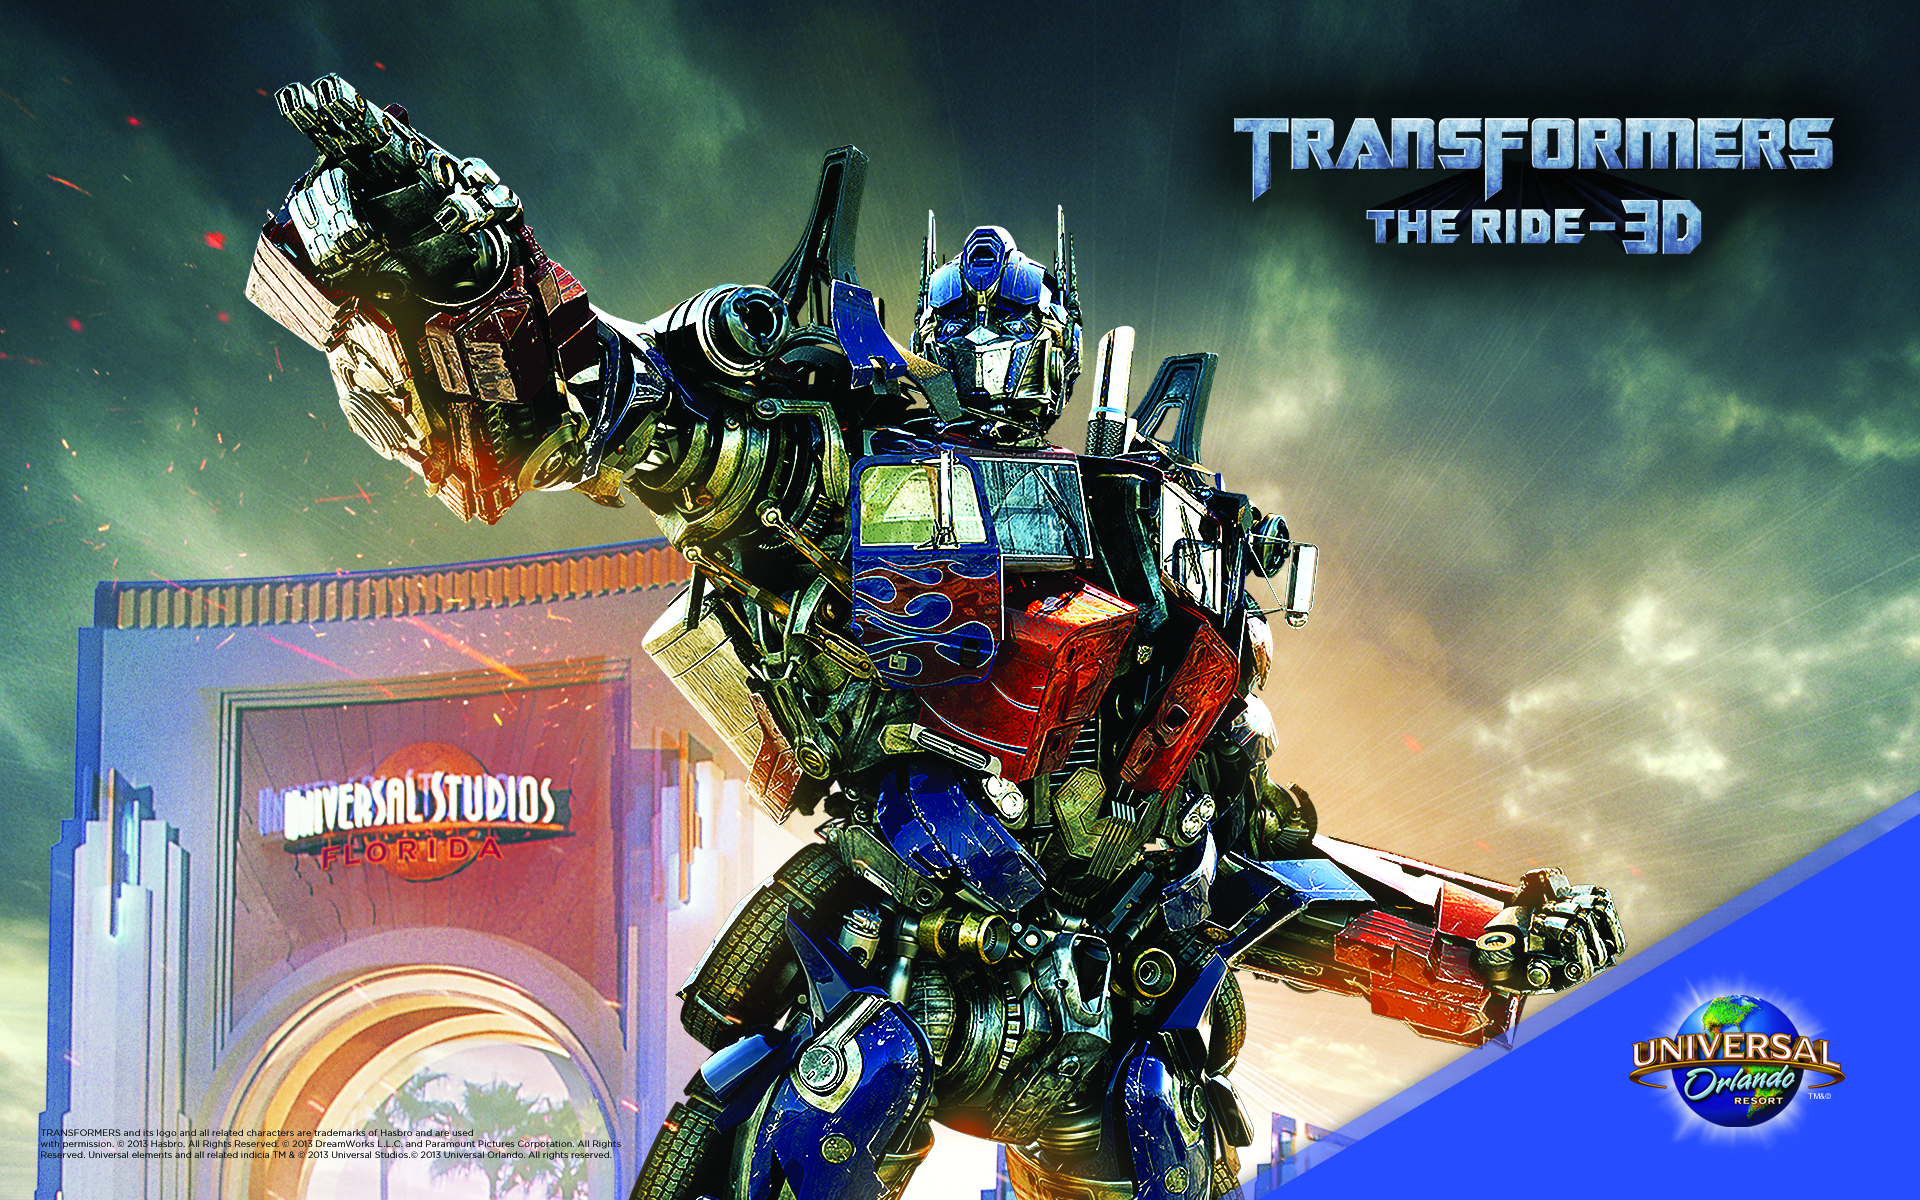 TRANSFORMERS The Ride 3D at Universal Orlando 1920x1200